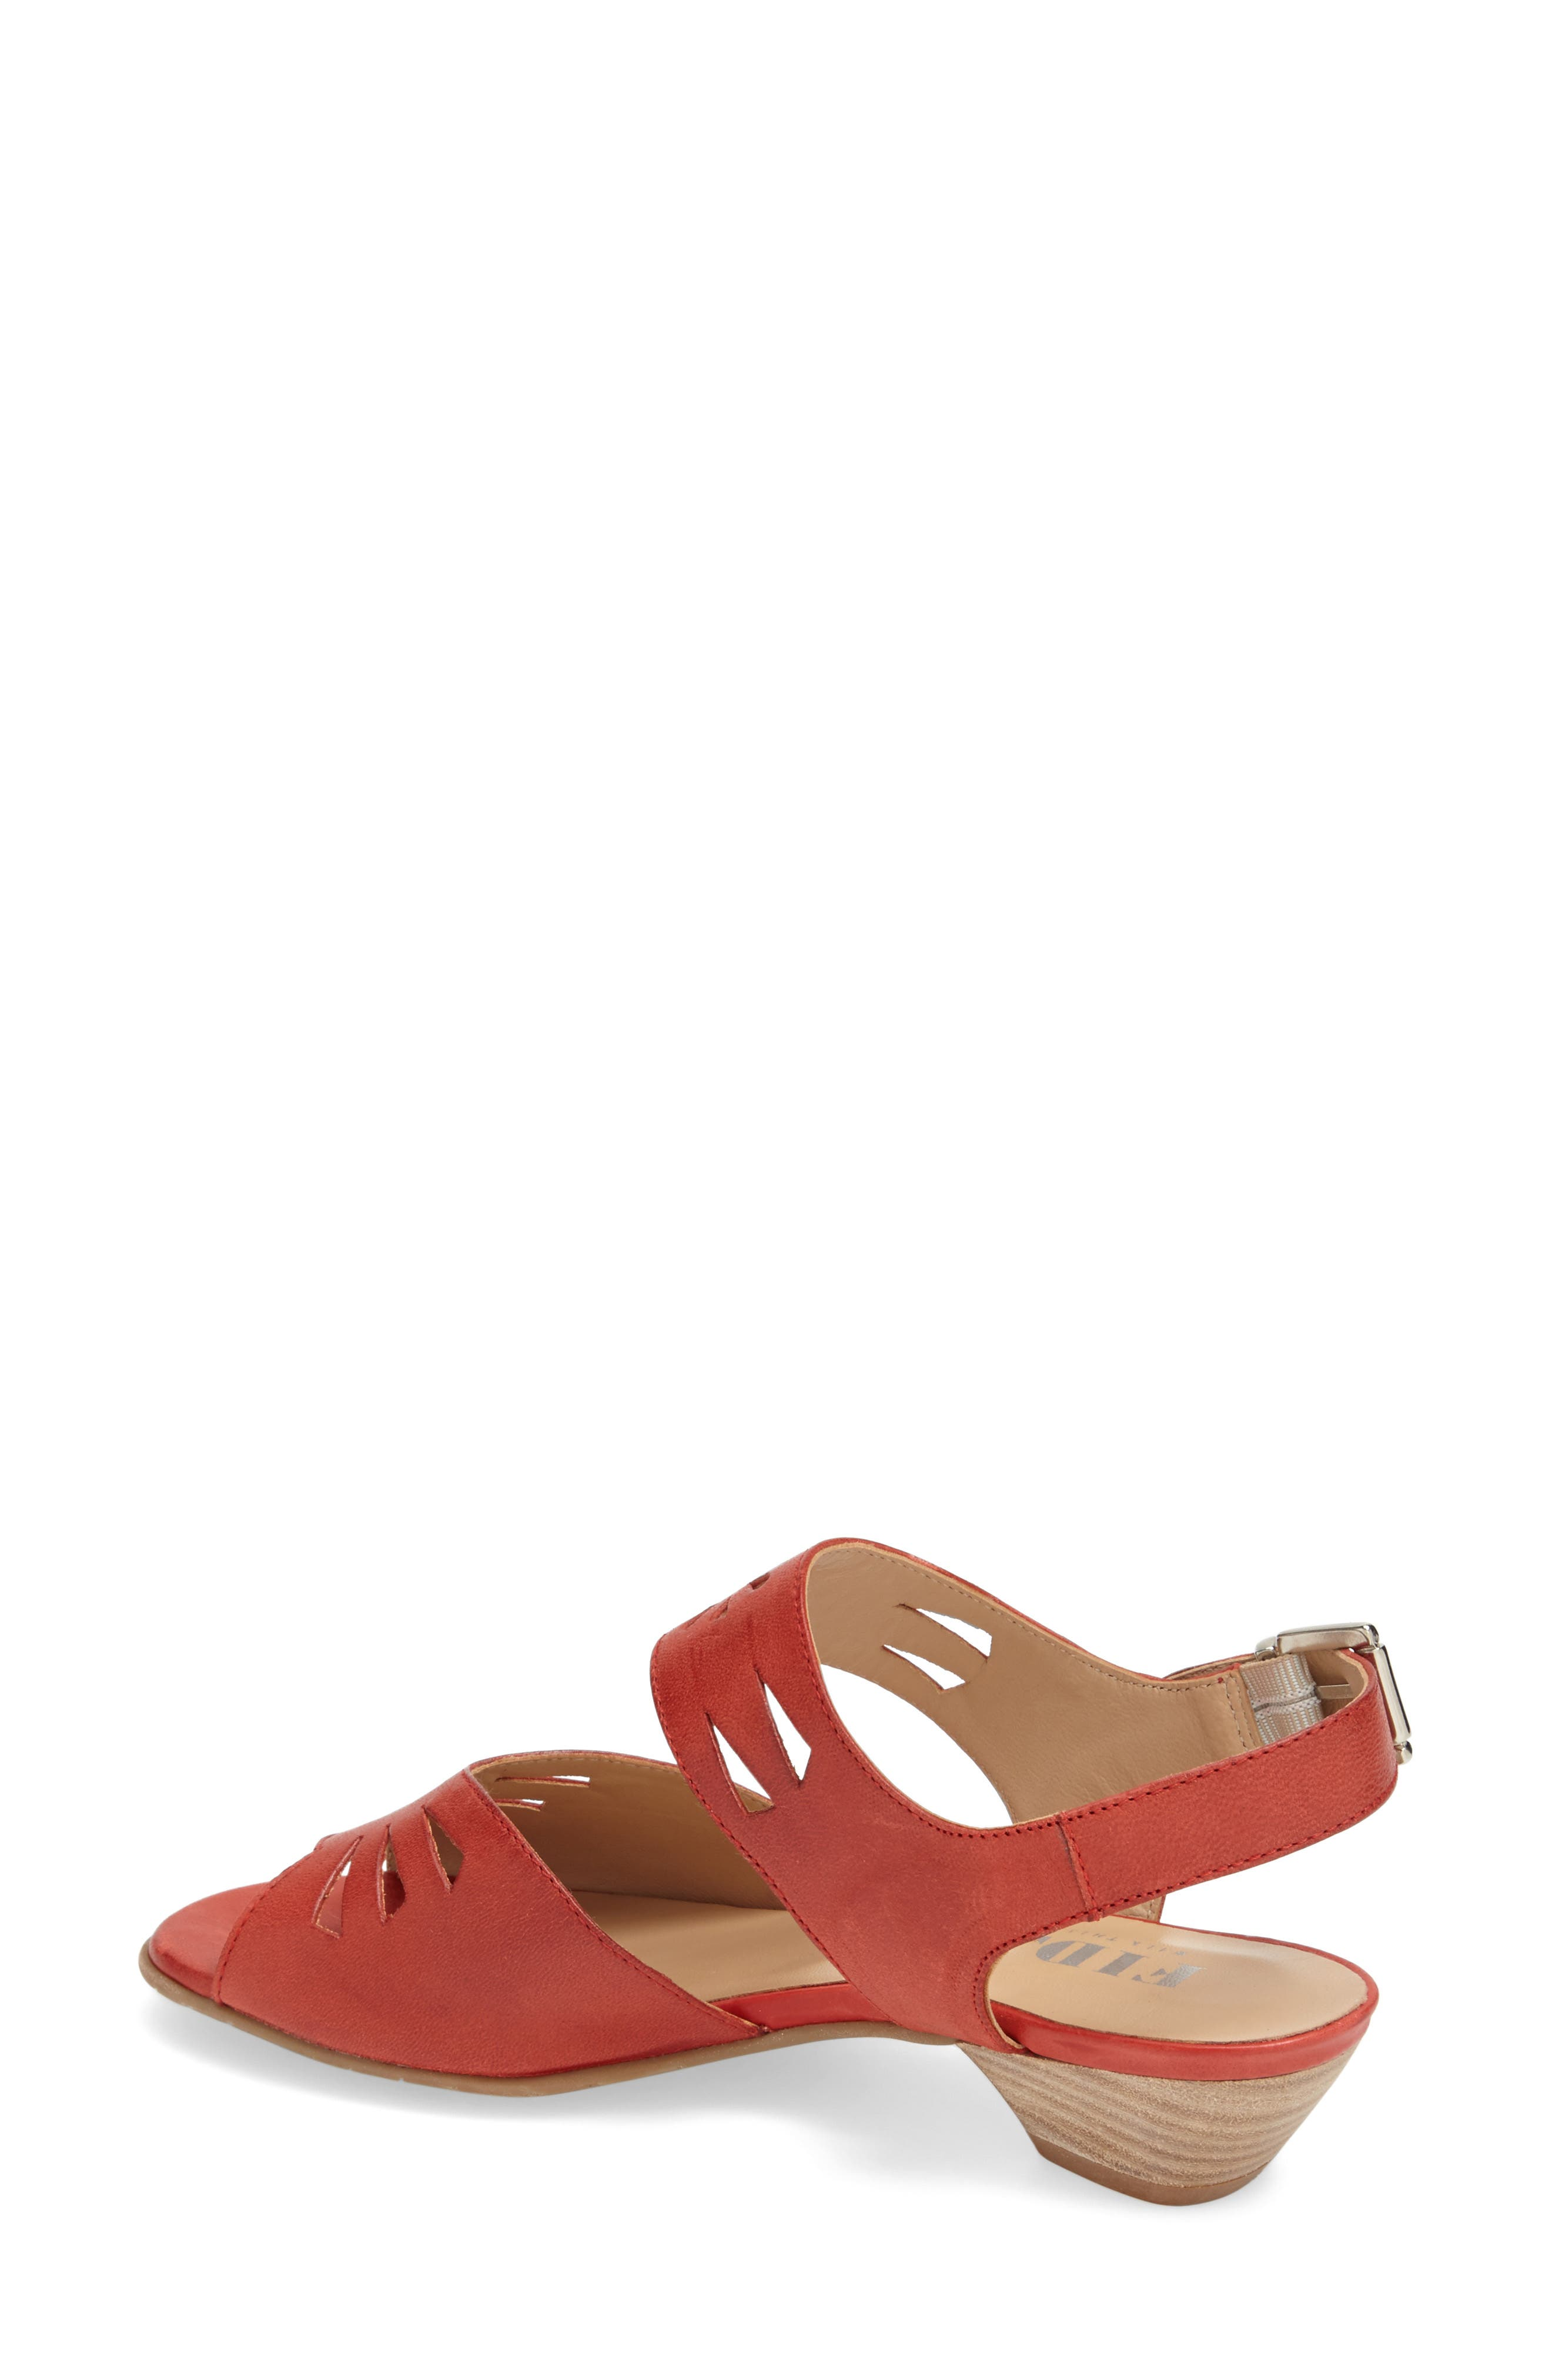 'V112' Perforated Leather Sandal,                             Alternate thumbnail 3, color,                             RED